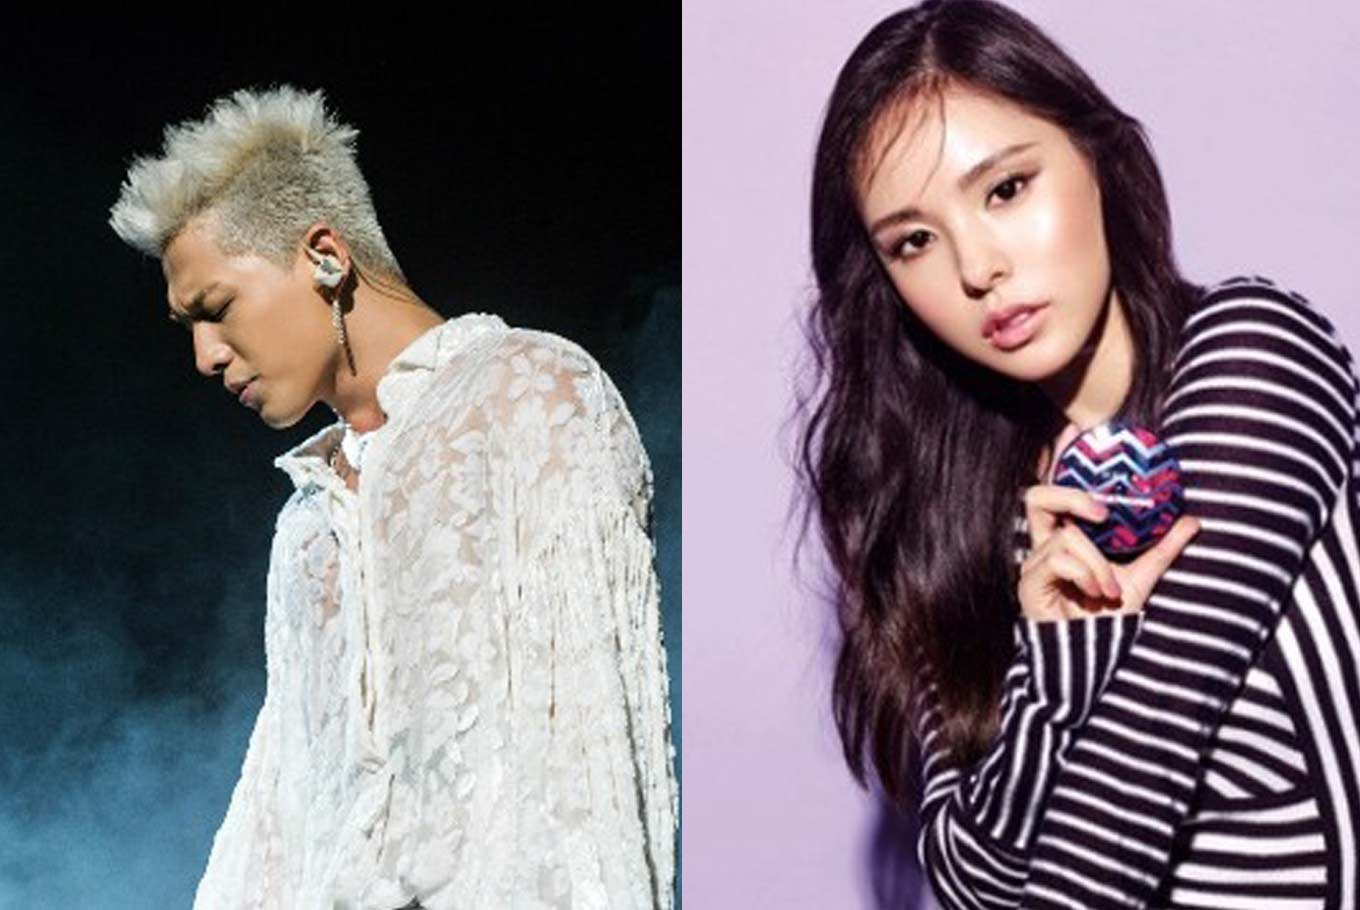 Taeyang, Min Hyo-rin to wed Feb. 3